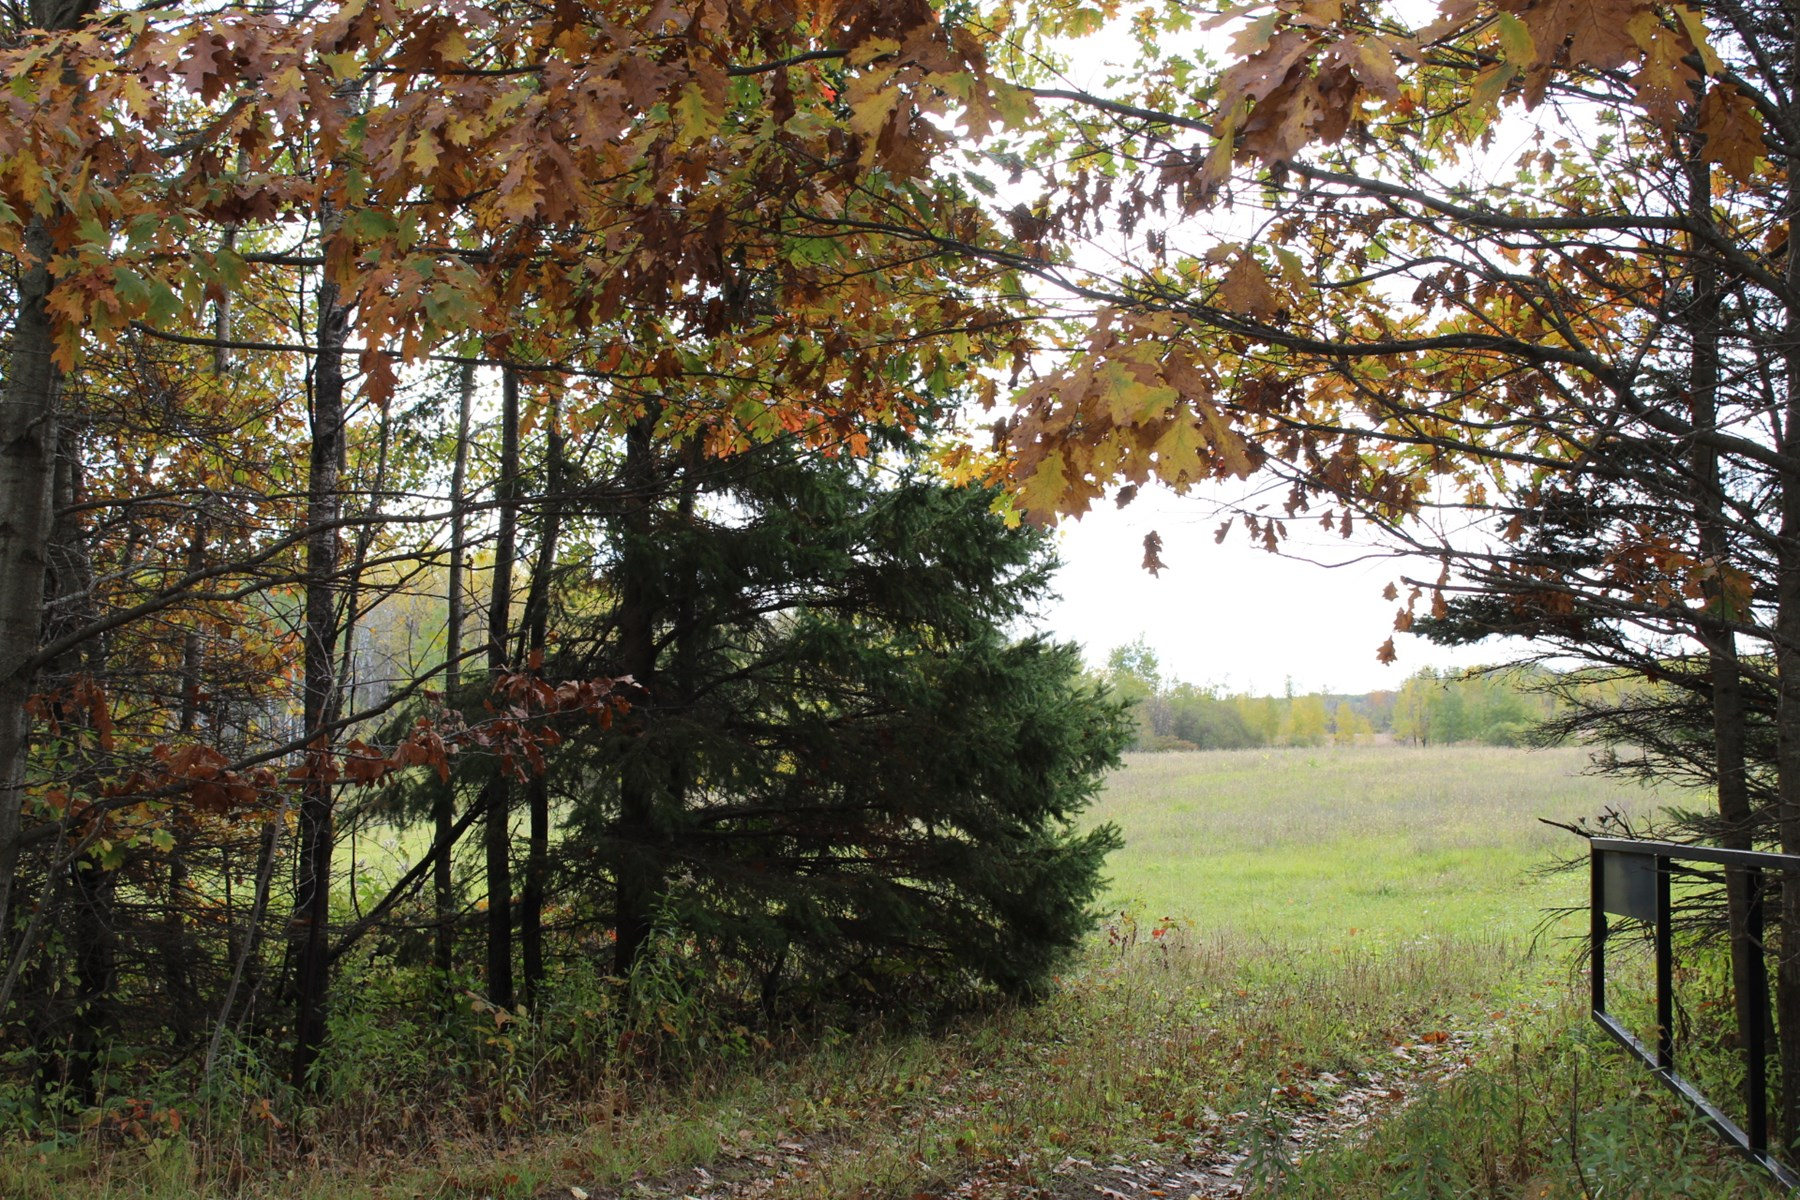 40 Acres of Land in Kanabec County for Sale